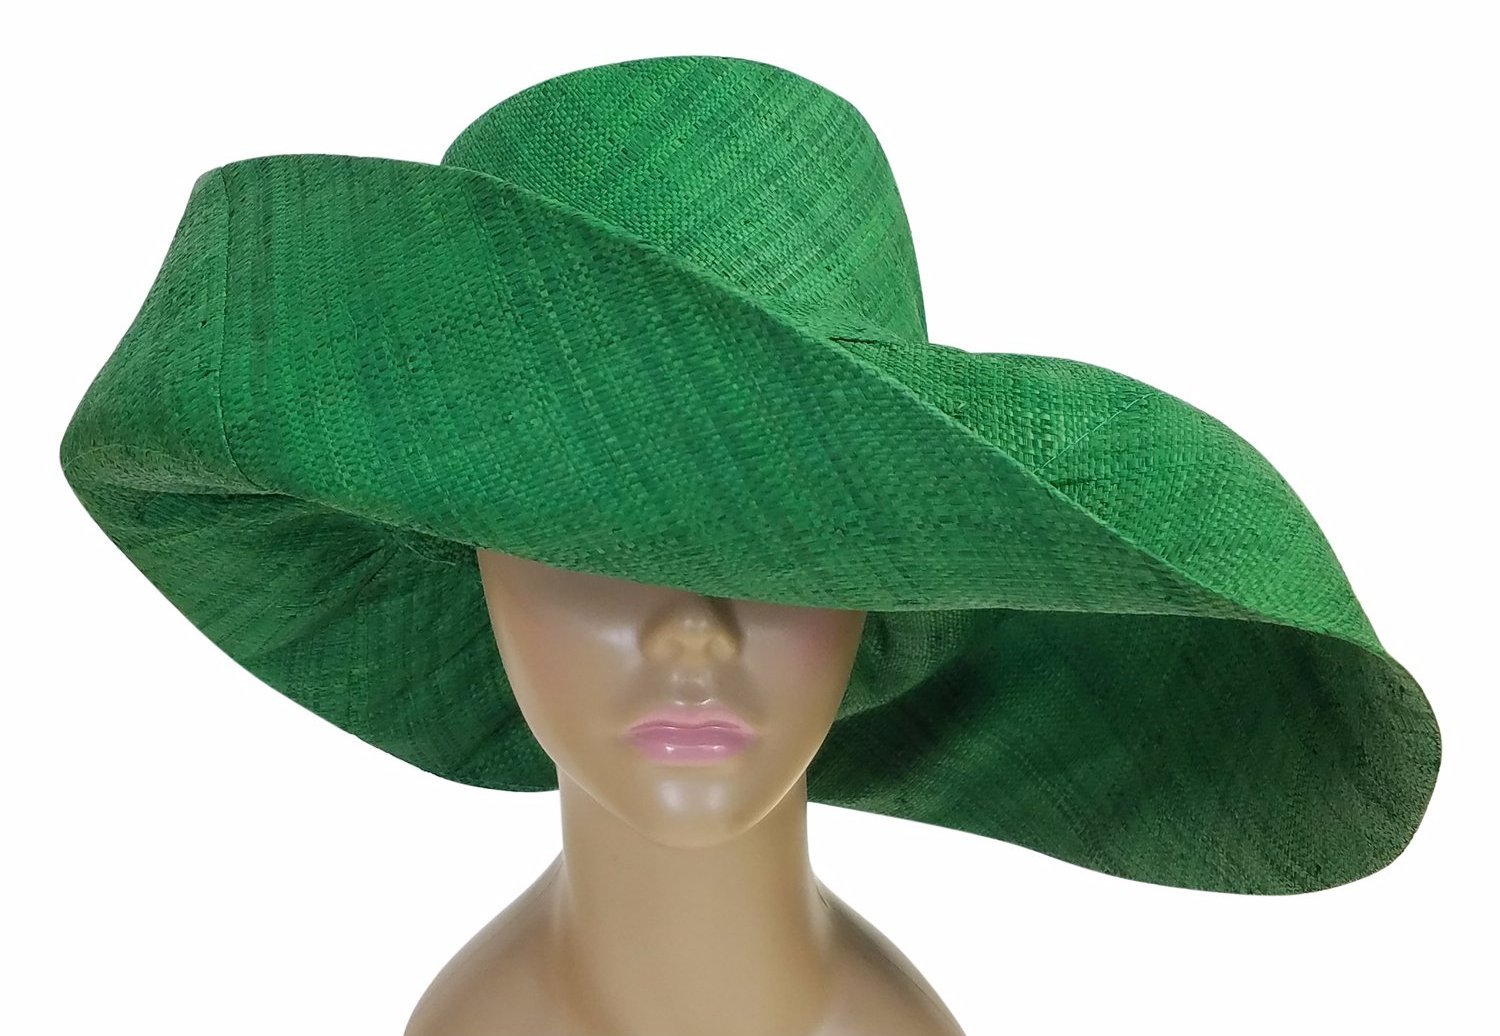 Tusajigwe: Authentic African Hand Made Green Madagascar Big Brim Raffia Sun Hat